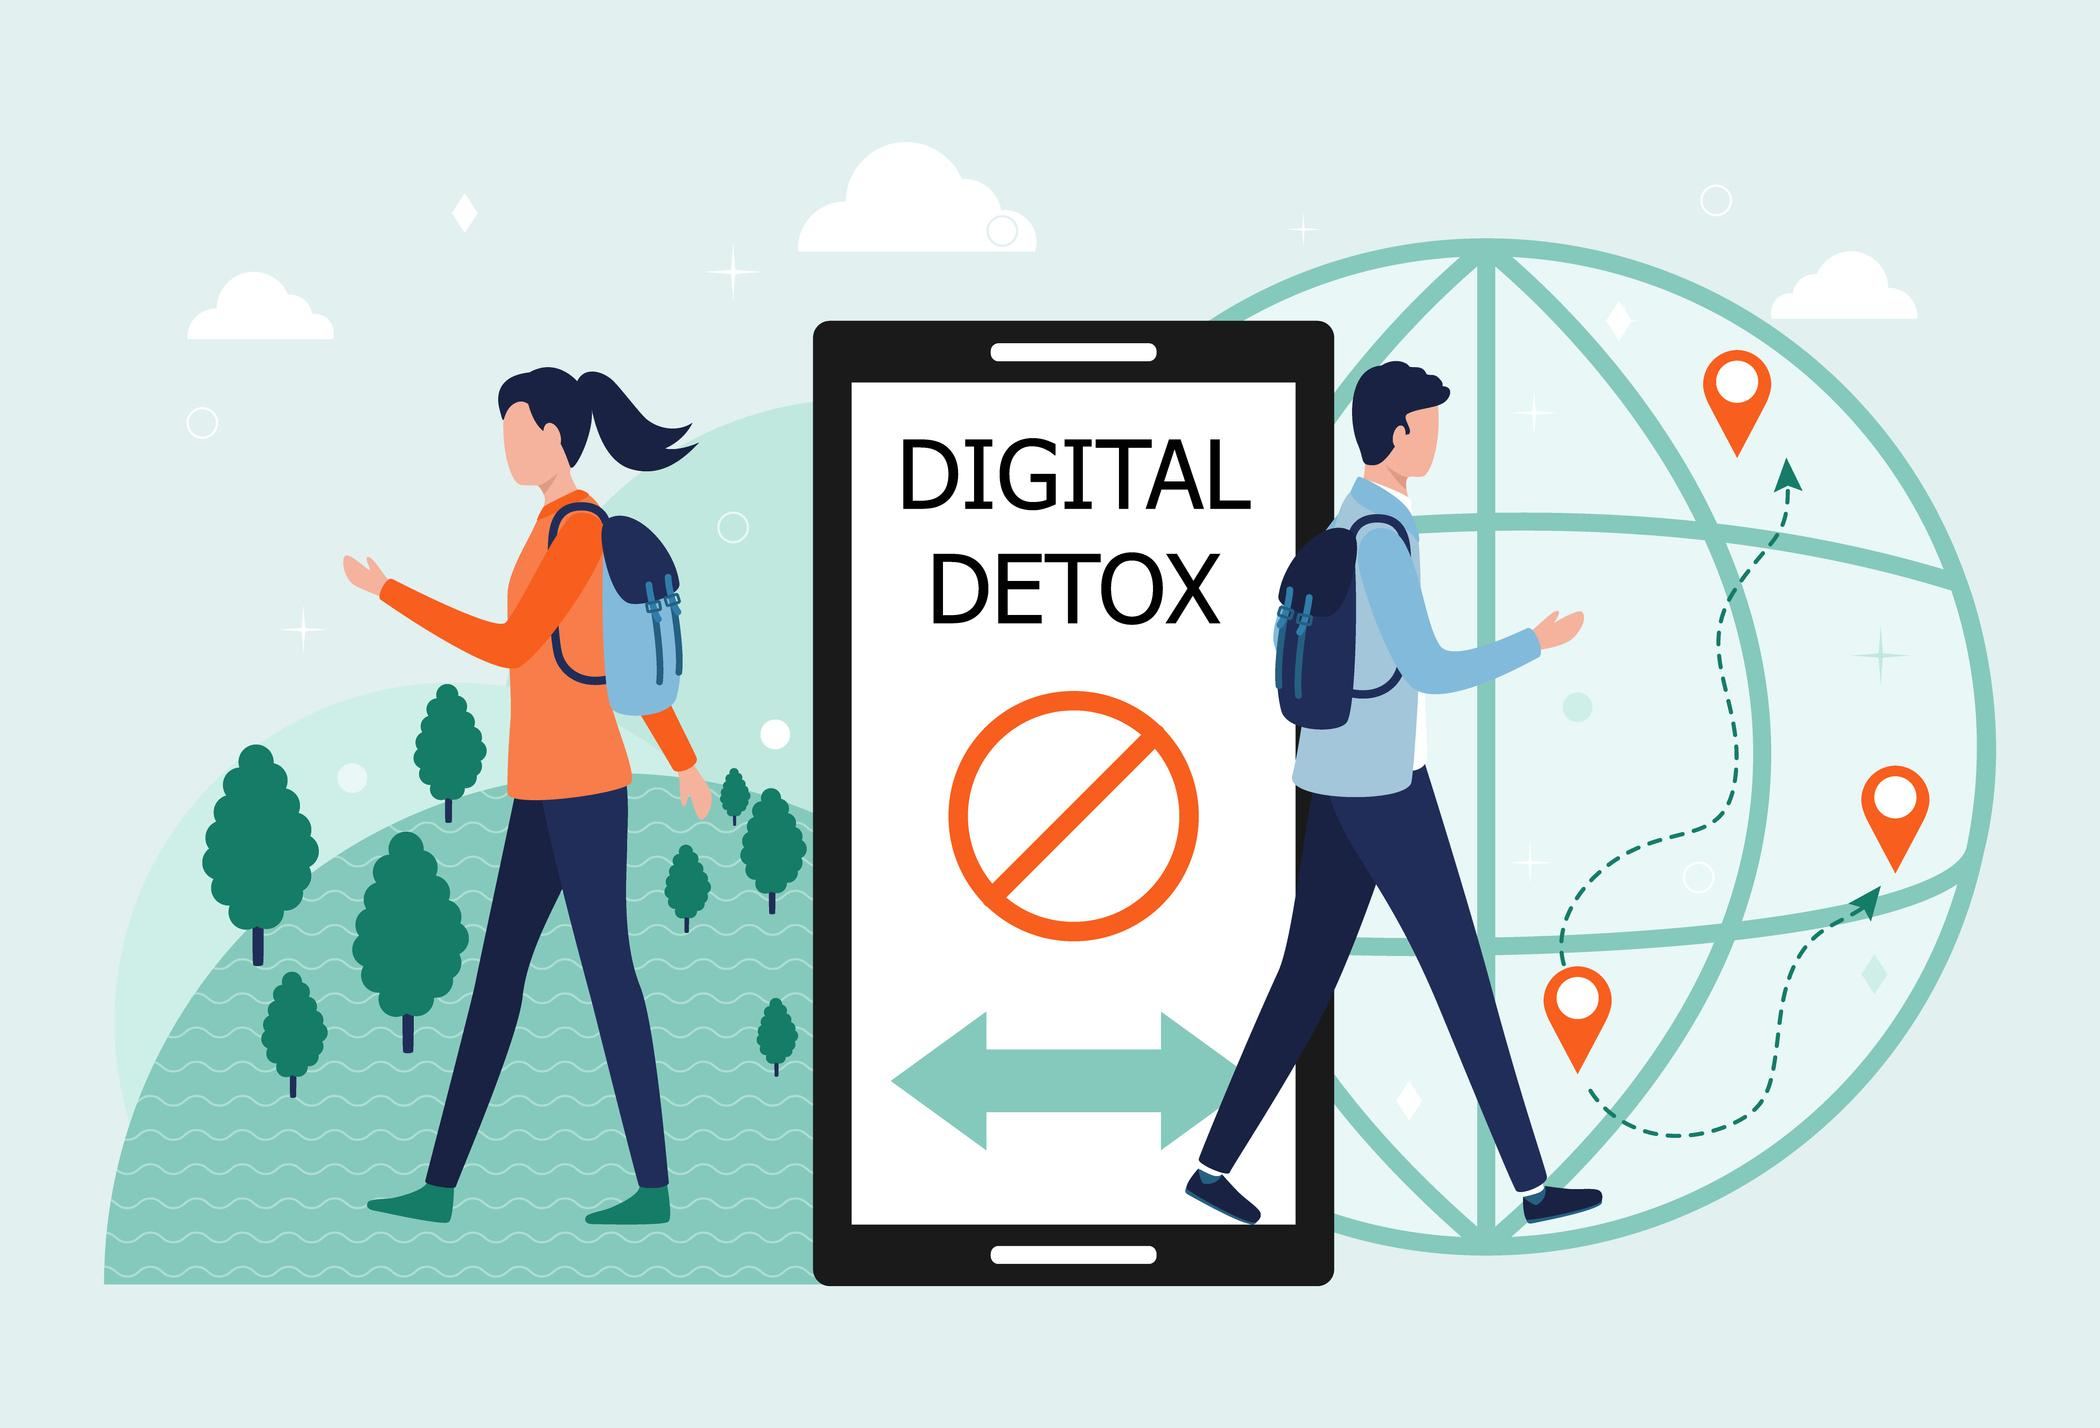 Did You Know a Digital Detox Could Improve Your Finances? Here Are 5 Tips to Help Reset Your Spending Habits Thumbnail